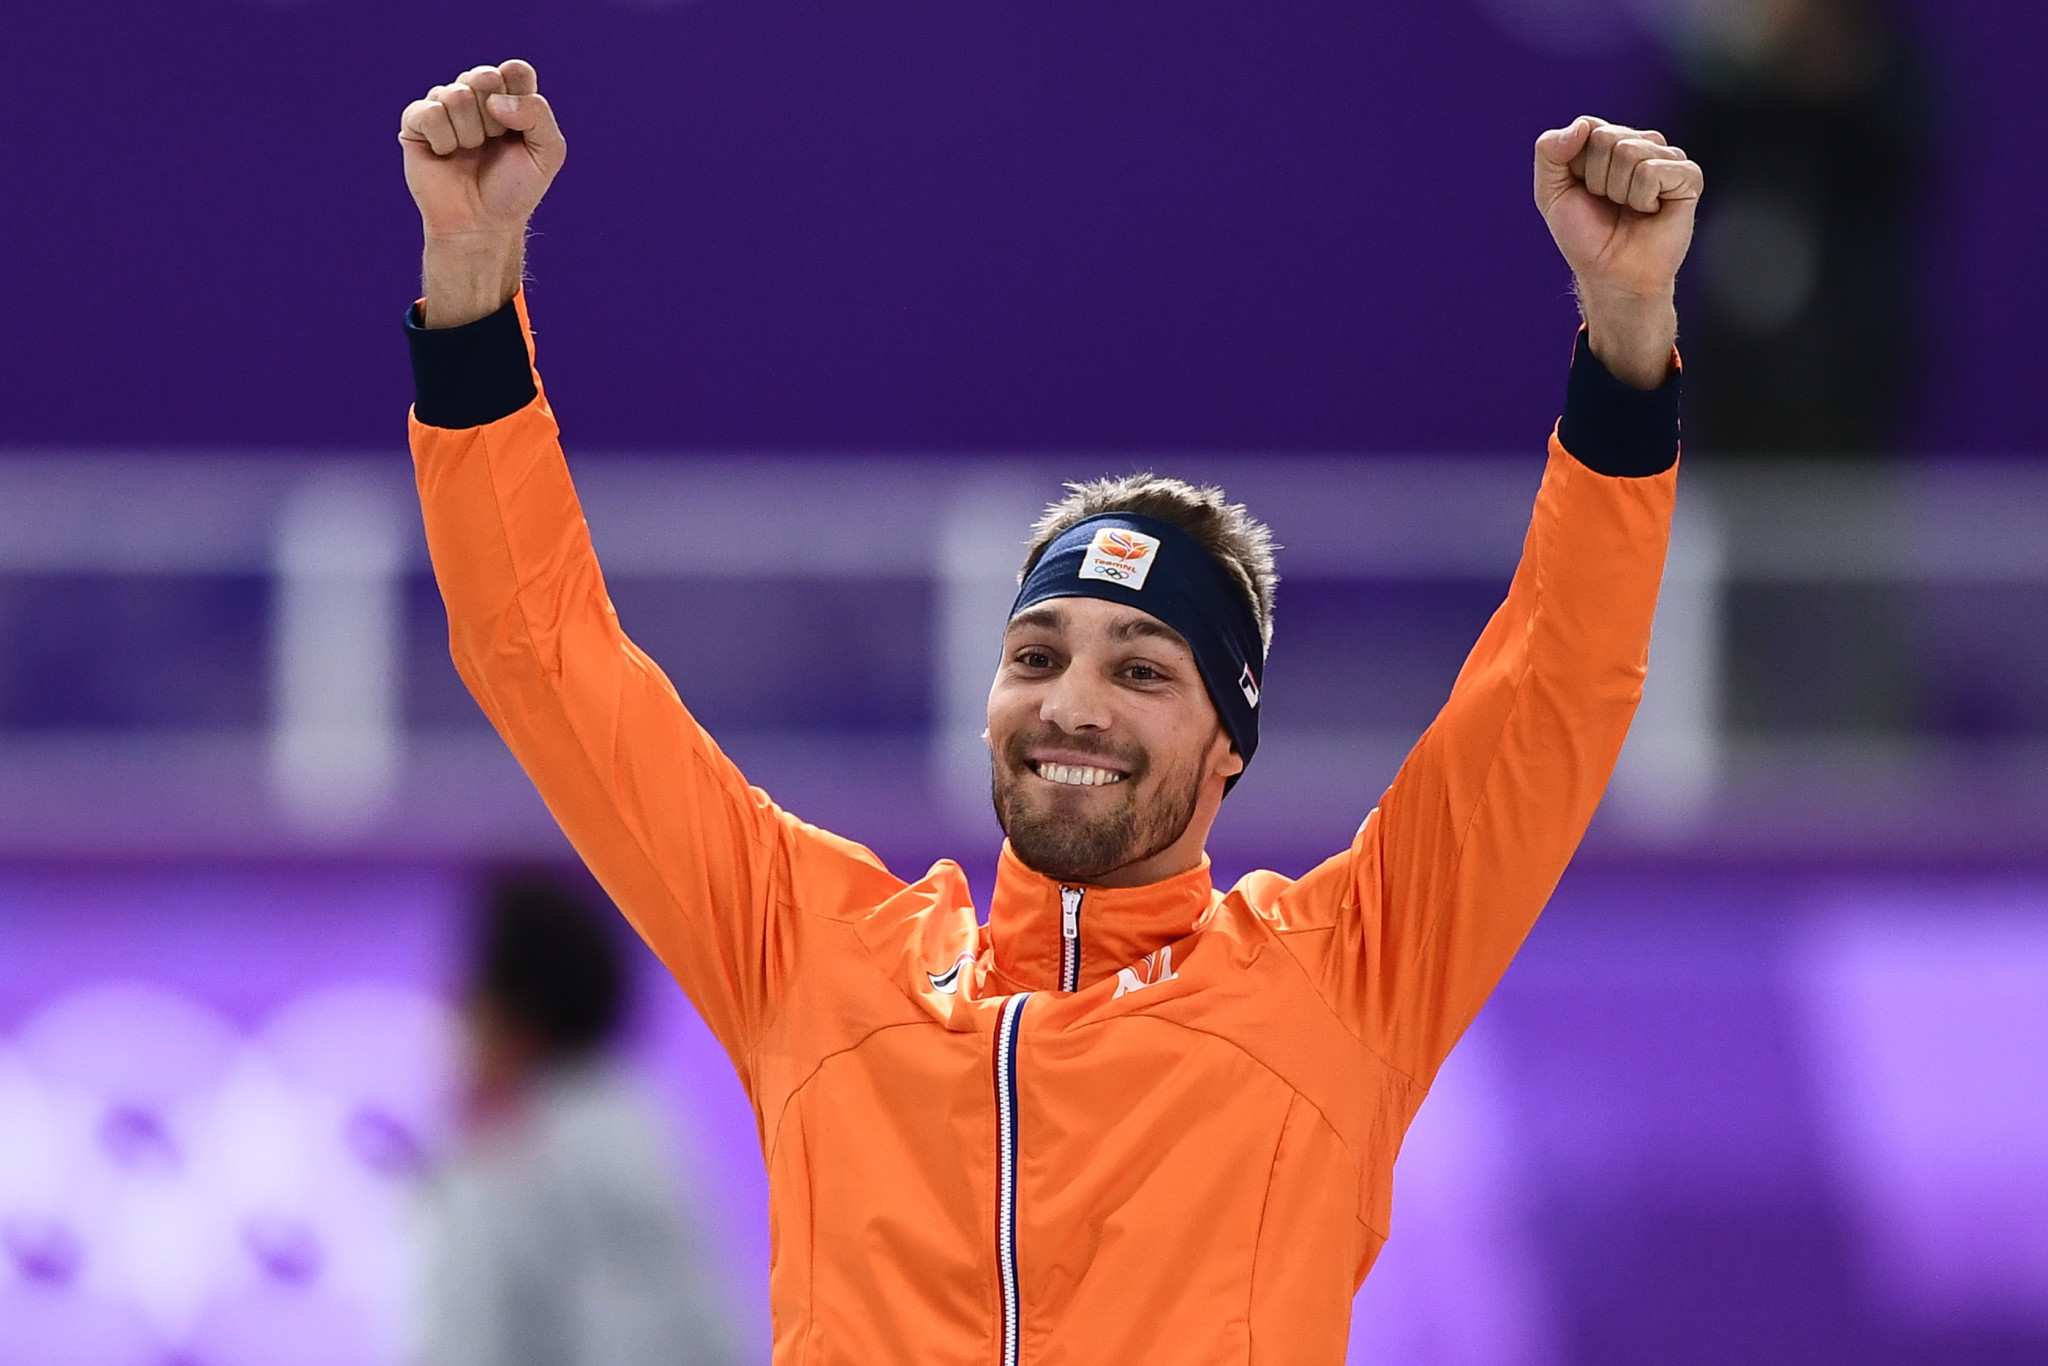 Nuis claims men's 1,500m gold as Netherlands' speed skating domination continues at Pyeongchang 2018